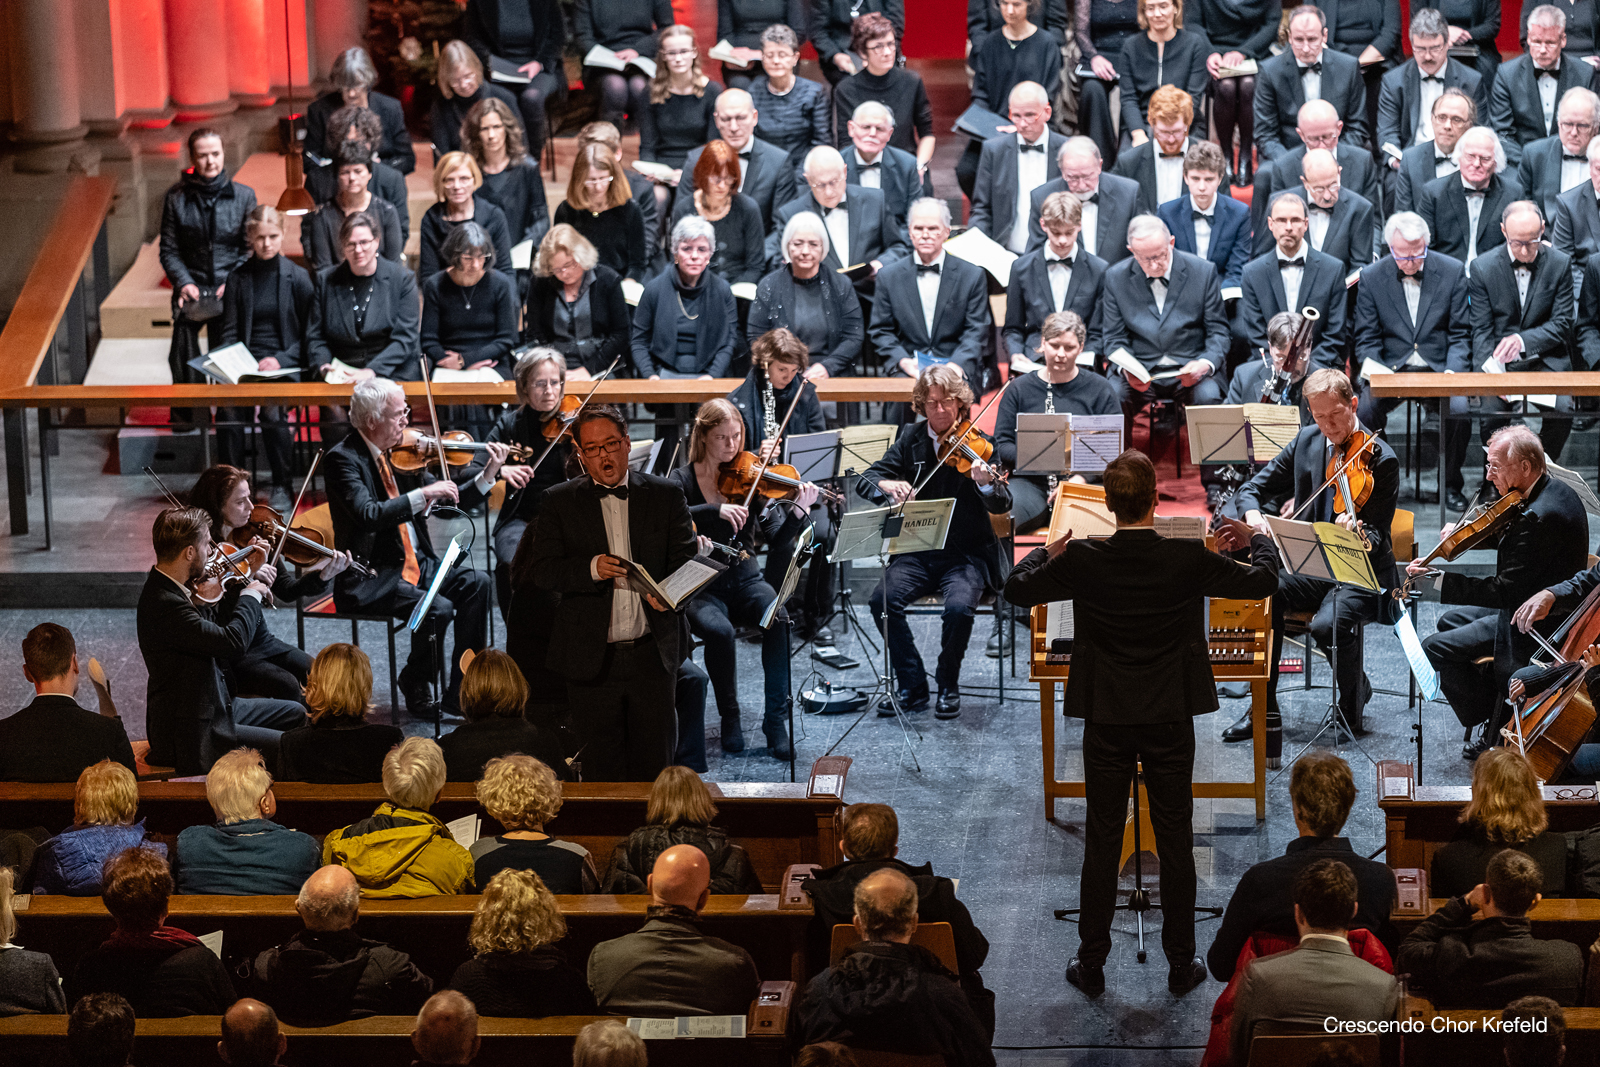 17_20191222_Crescendo_Chor_Krefeld_Messiah_017